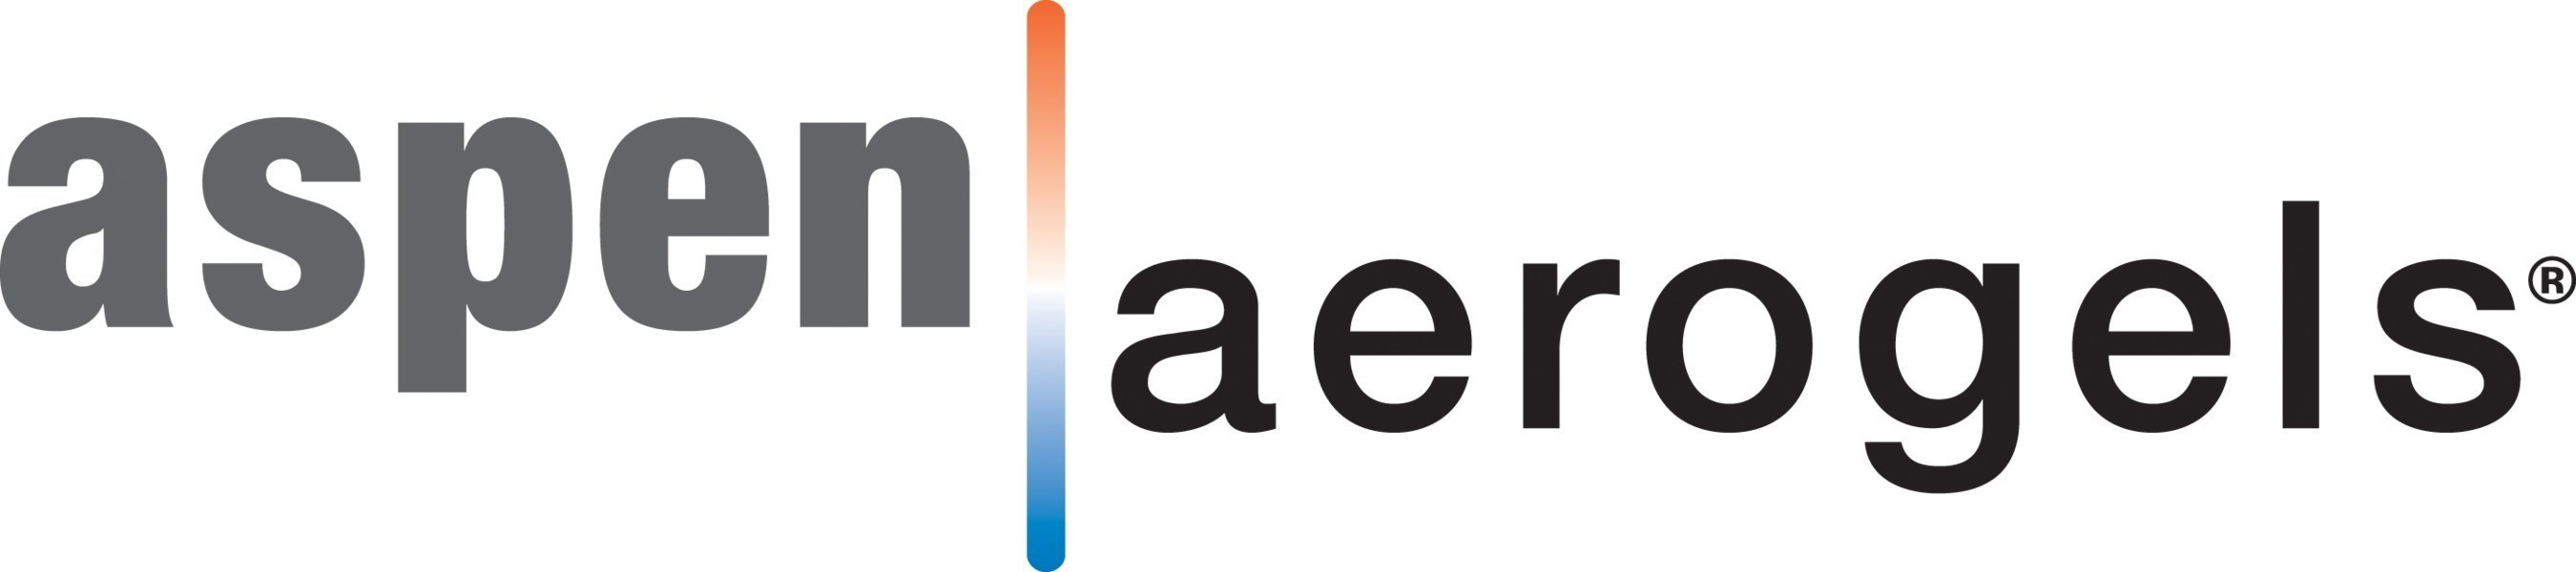 Aspen Aerogels, Inc. Awarded $2.75 Million from ARPA-E for Transformational Energy Technology